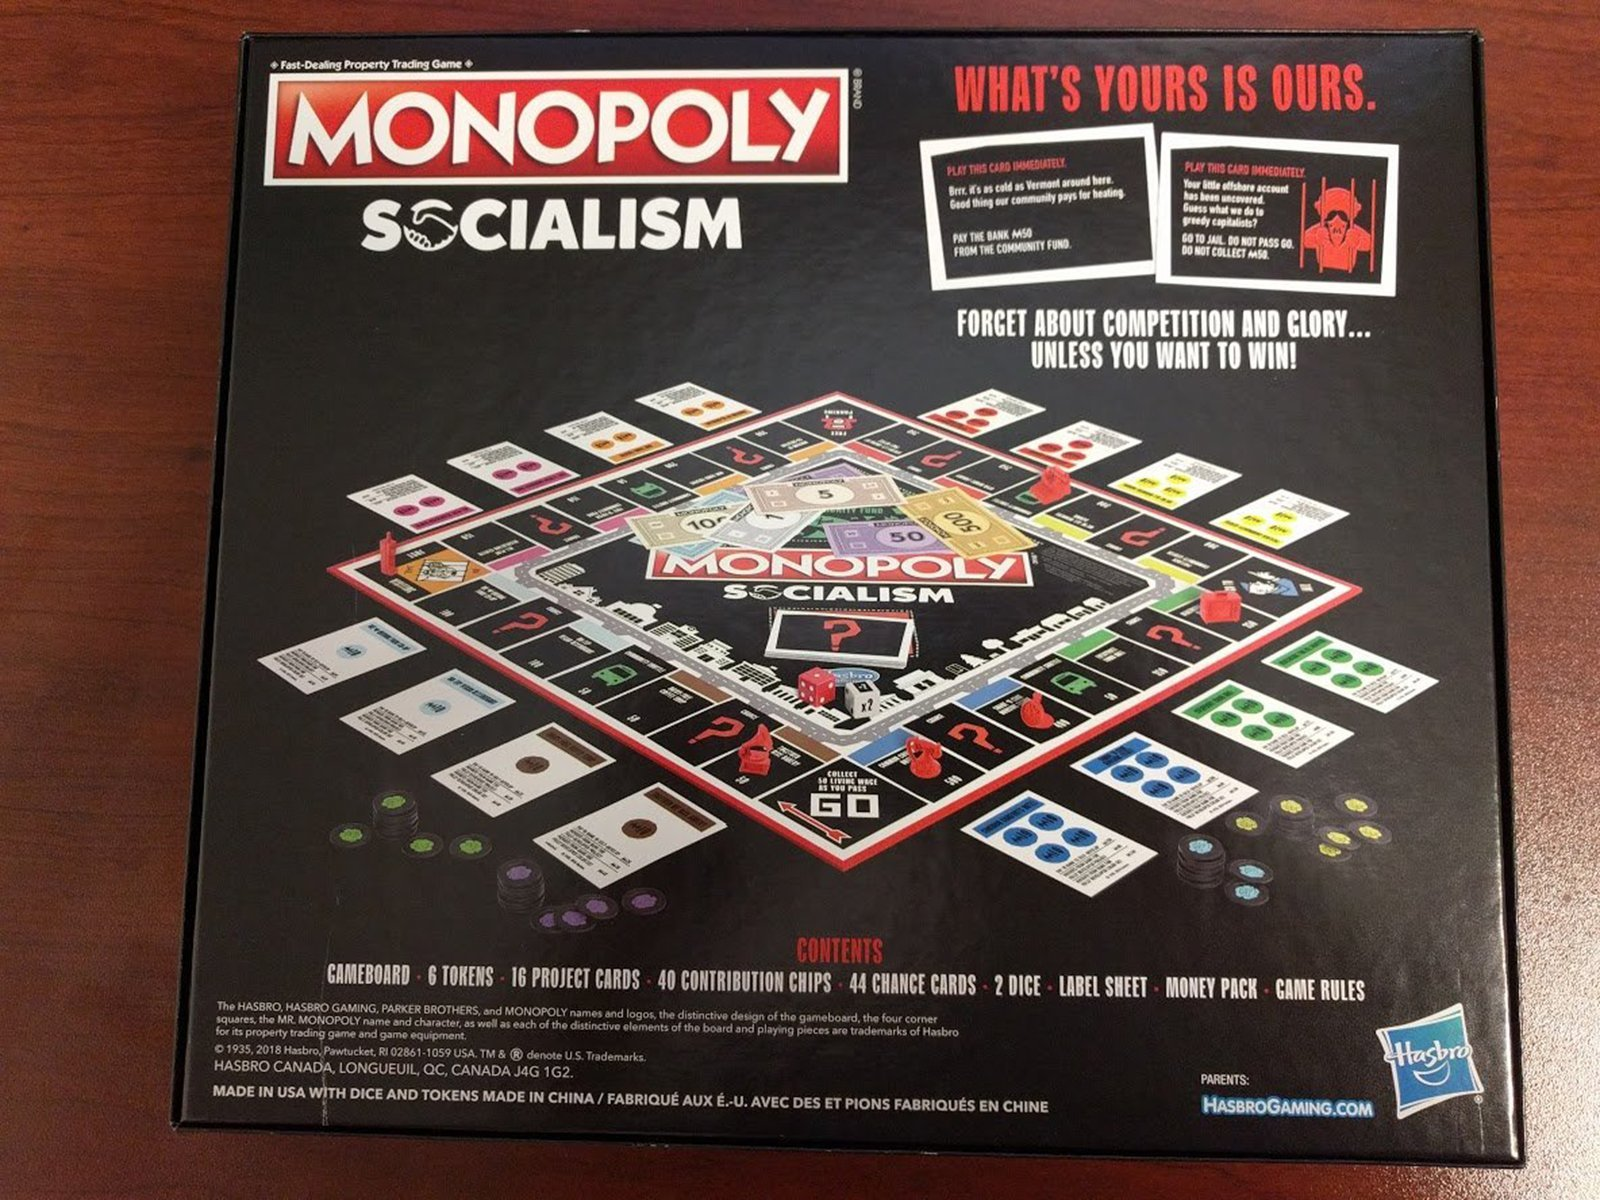 Yes, there's a socialism-themed Monopoly game. It packs a message tailored for capitalists